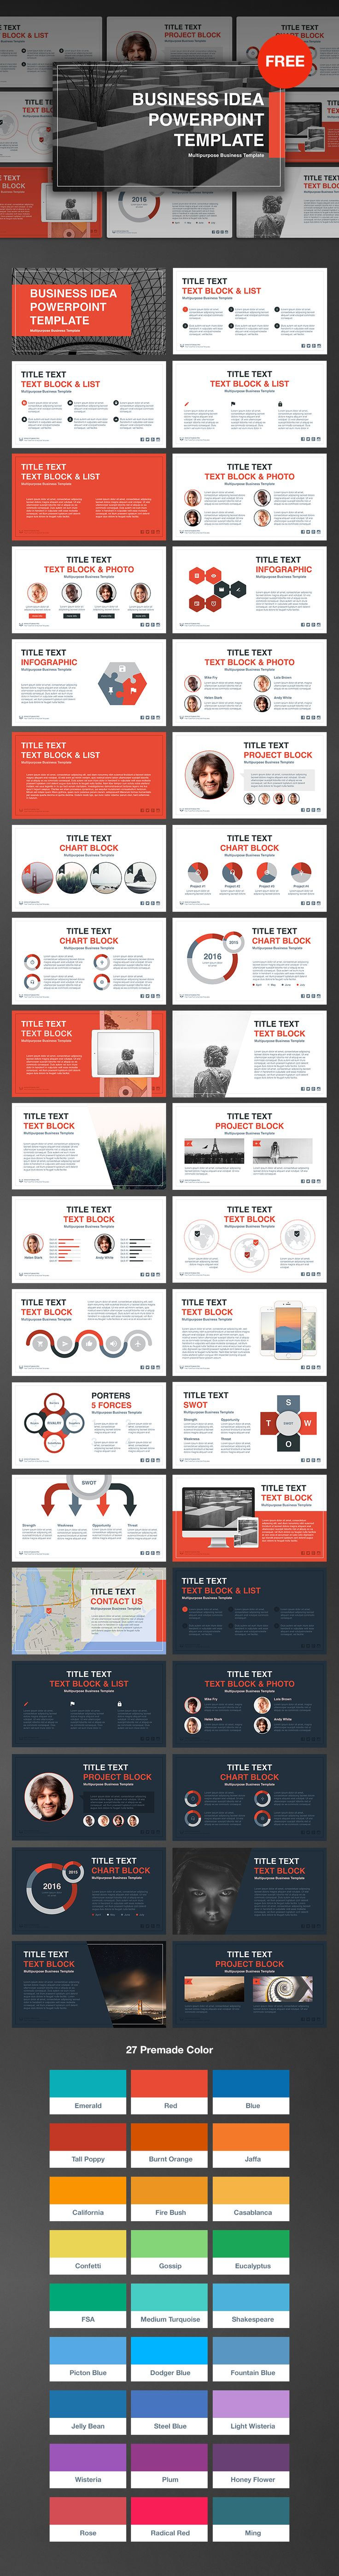 "FREE DOWNLOAD PowerPoint Template: https://hislide.io/product/business-idea-free-powerpoint-template/ 31 slides, PPTX format, 16:9 HD, free support, 27 premade color, ""drag & drop"", light & dark versions. #free #freebie #freebies #ppt #pptx #powerpoint #template #theme #site2max #design #red #emerald #hd #business #idea #marketing"